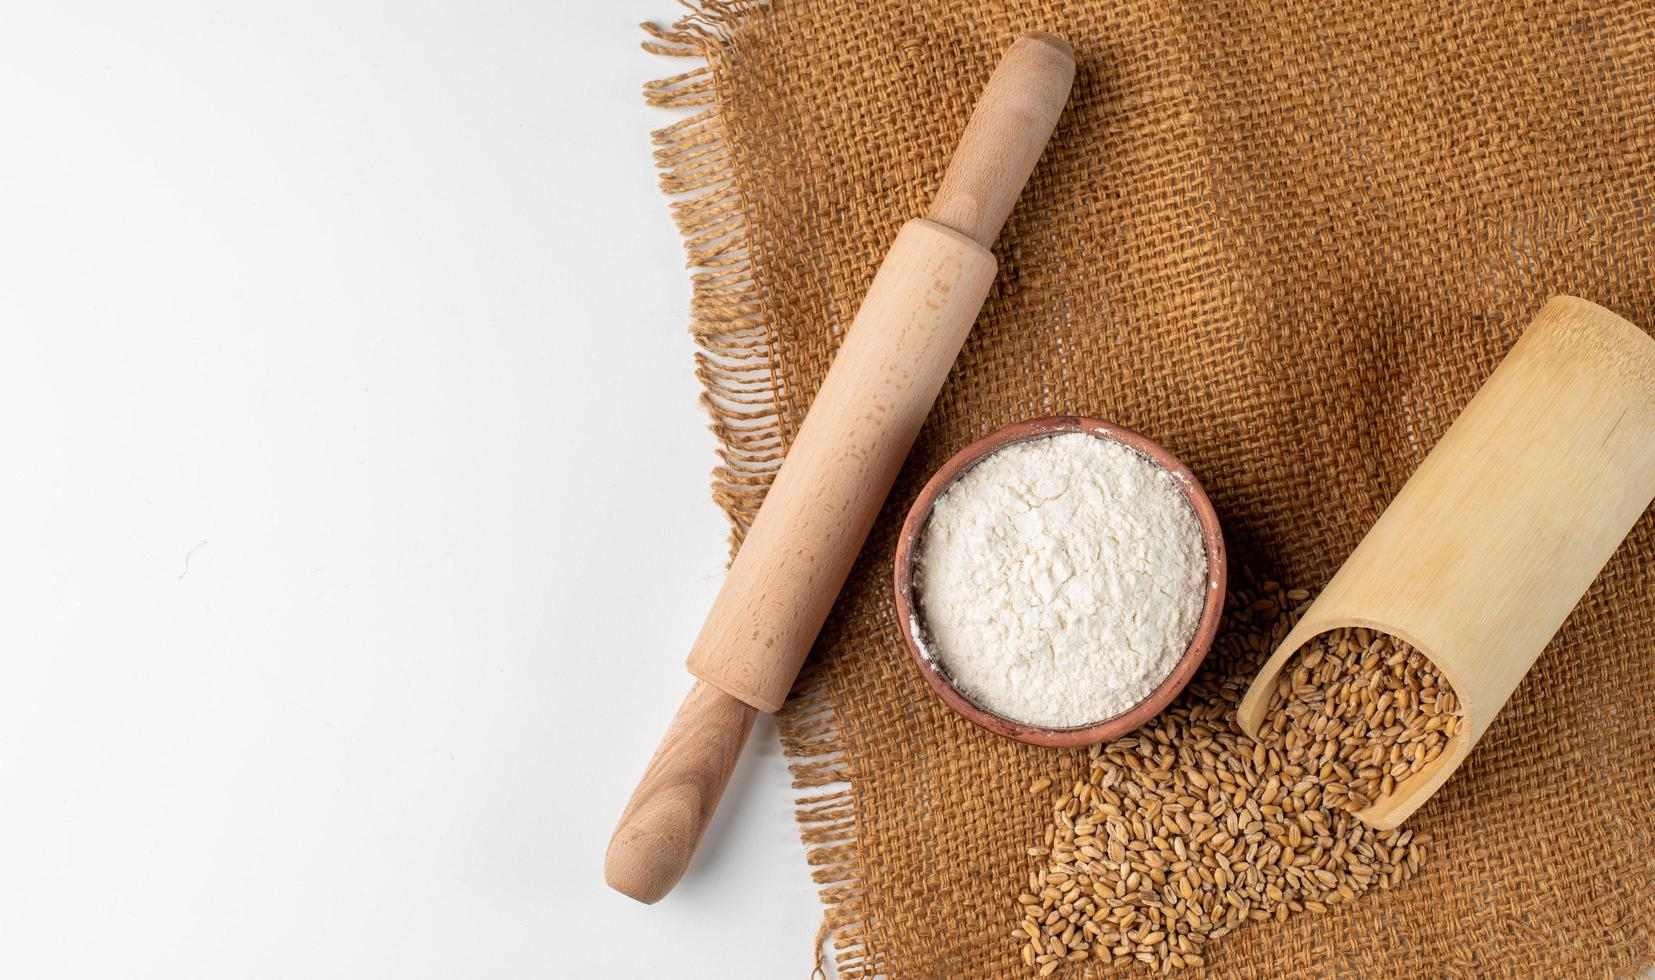 Baking essentials on natural cloth photo